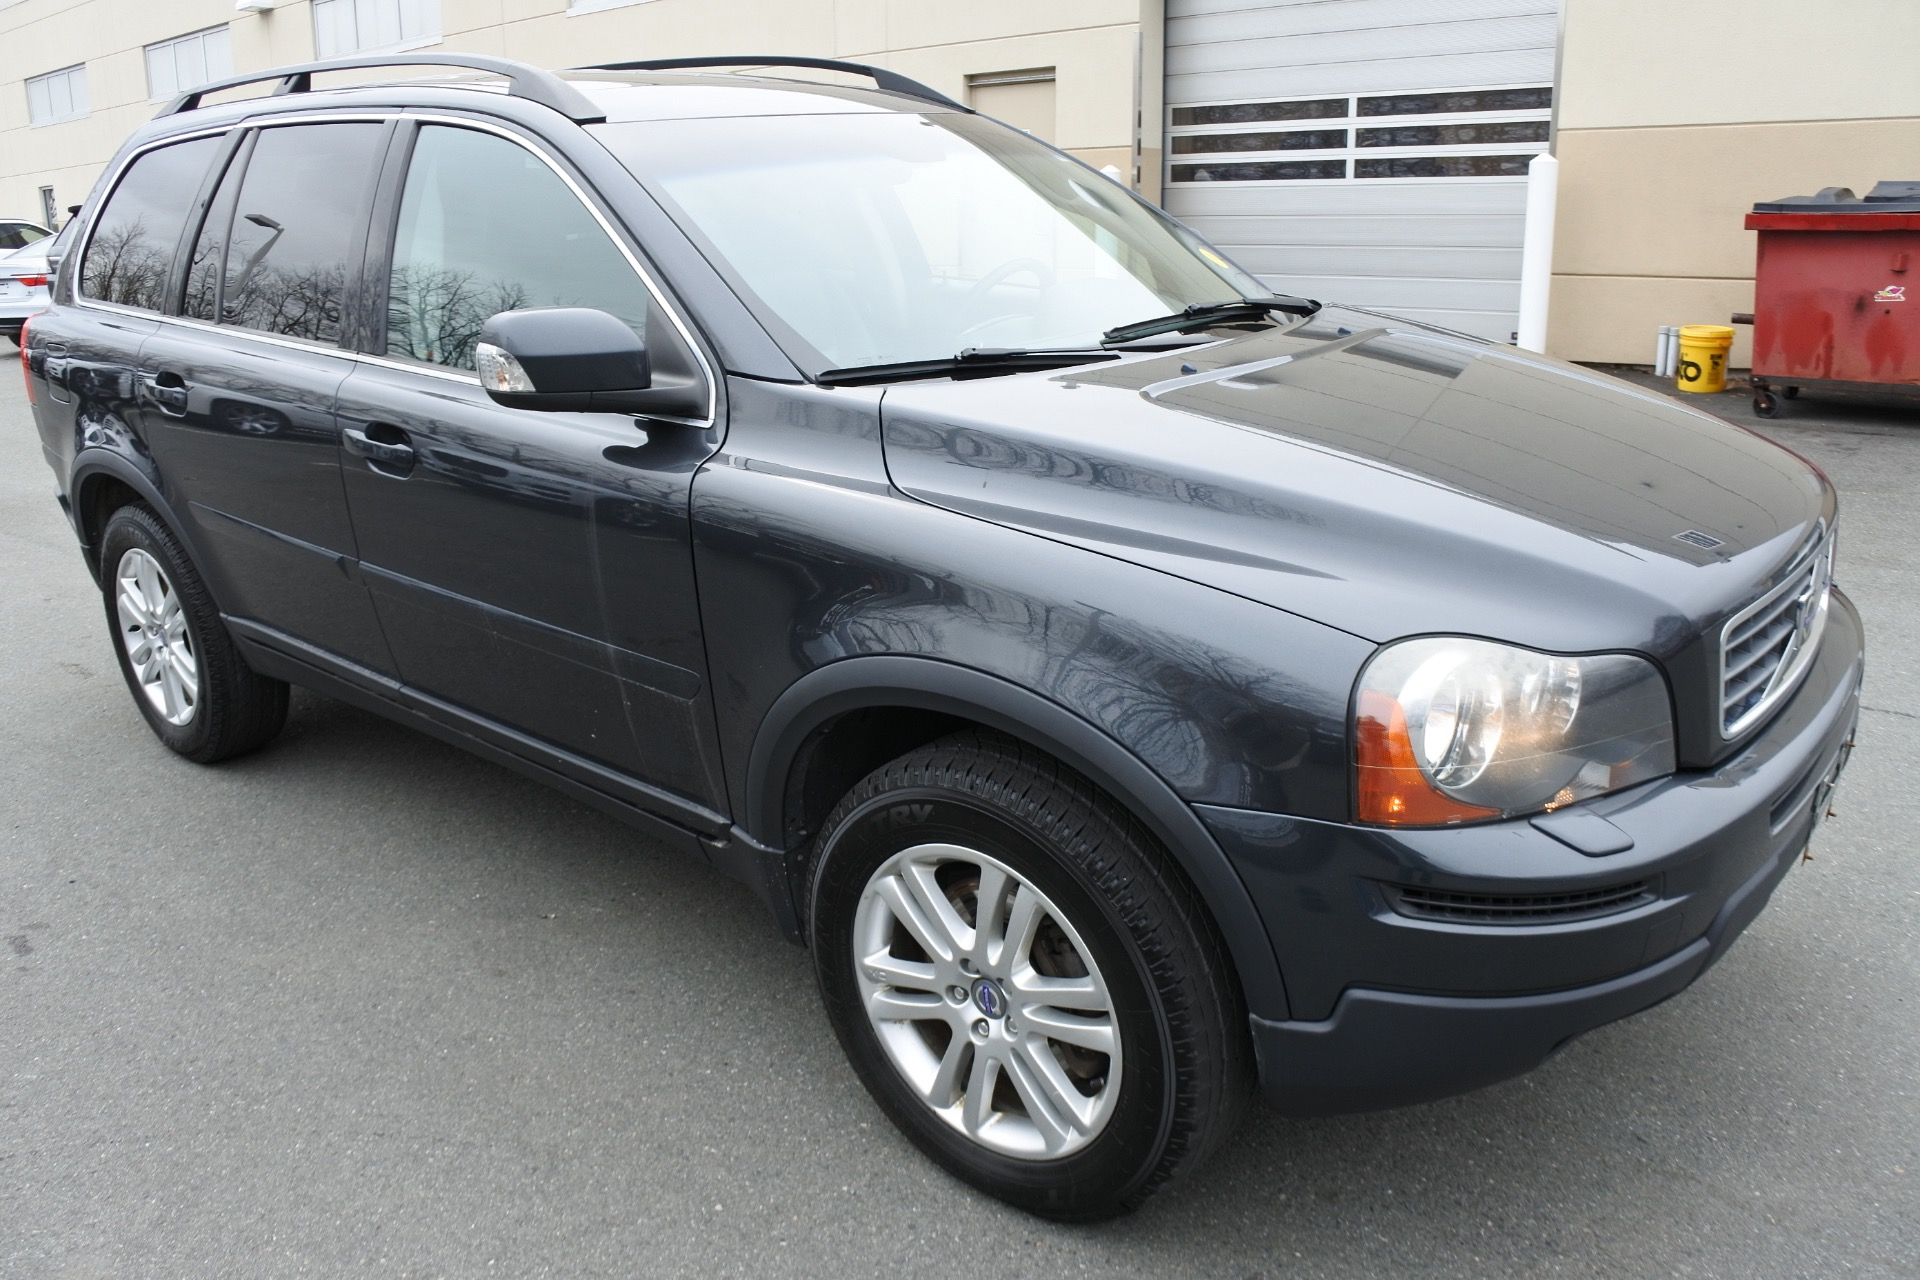 Used 2009 Volvo Xc90 AWD 4dr I6 w/Sunroof Used 2009 Volvo Xc90 AWD 4dr I6 w/Sunroof for sale  at Metro West Motorcars LLC in Shrewsbury MA 7